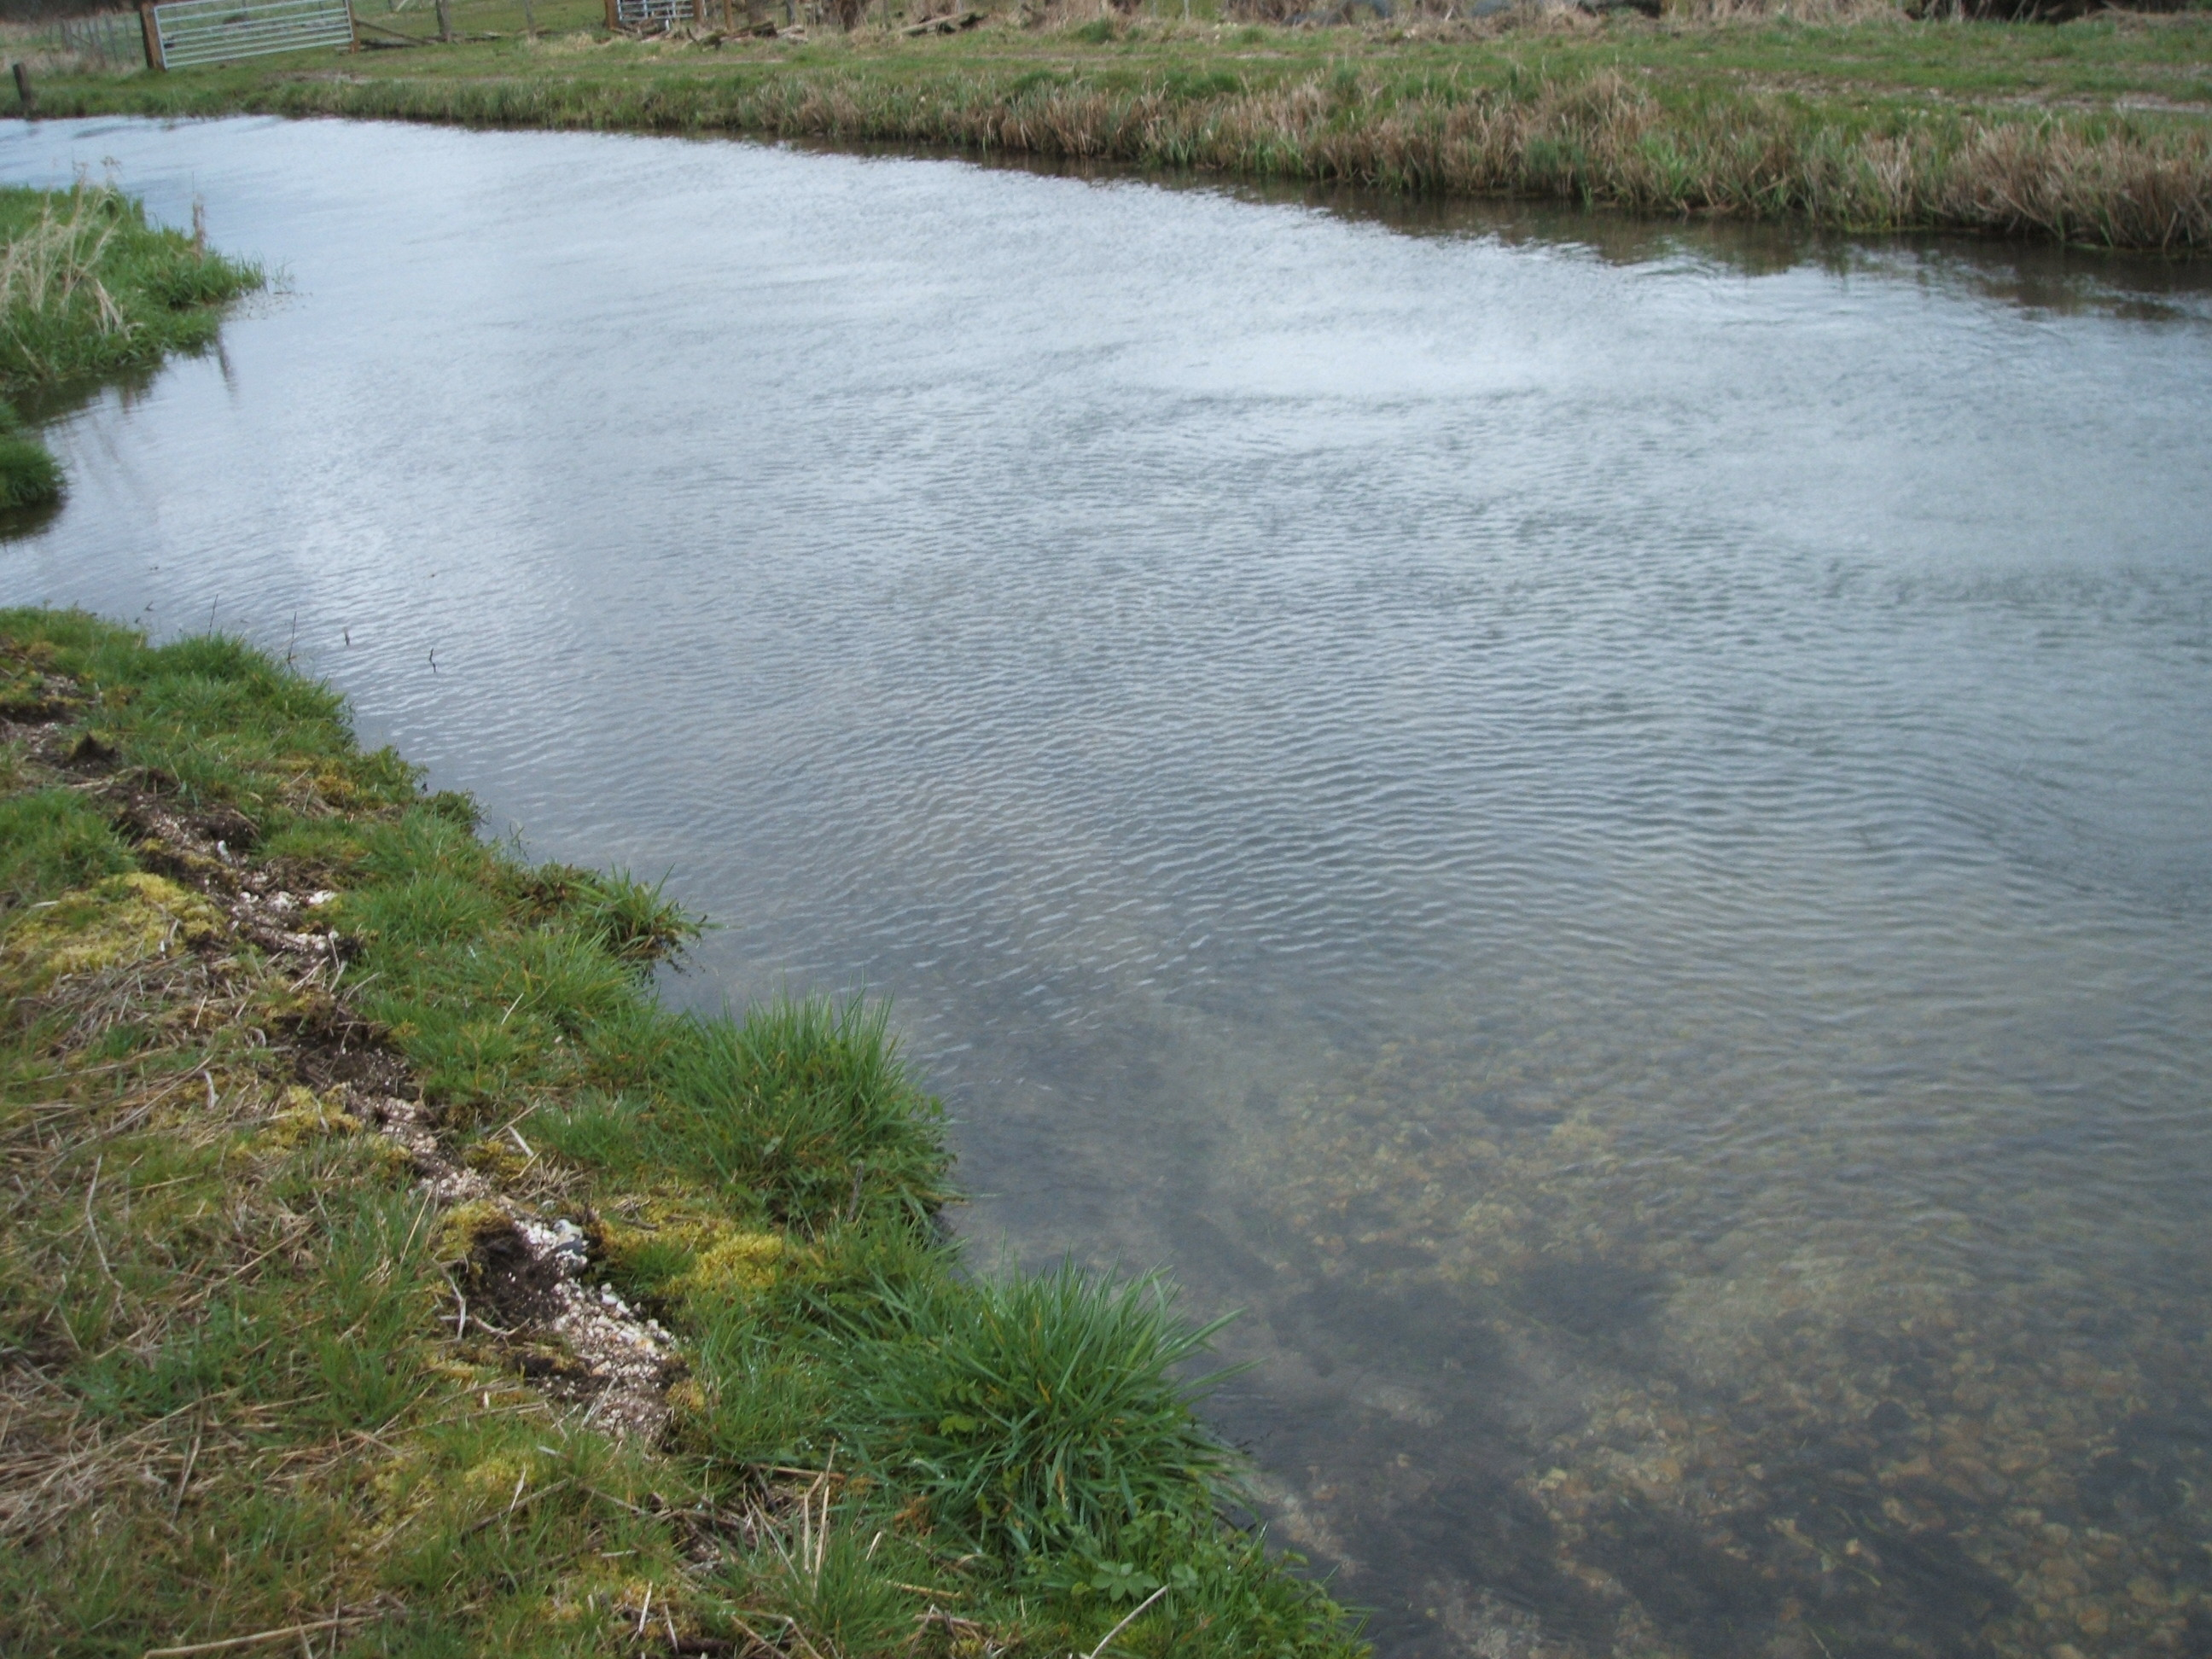 A tributary of the River Itchen at Winchester